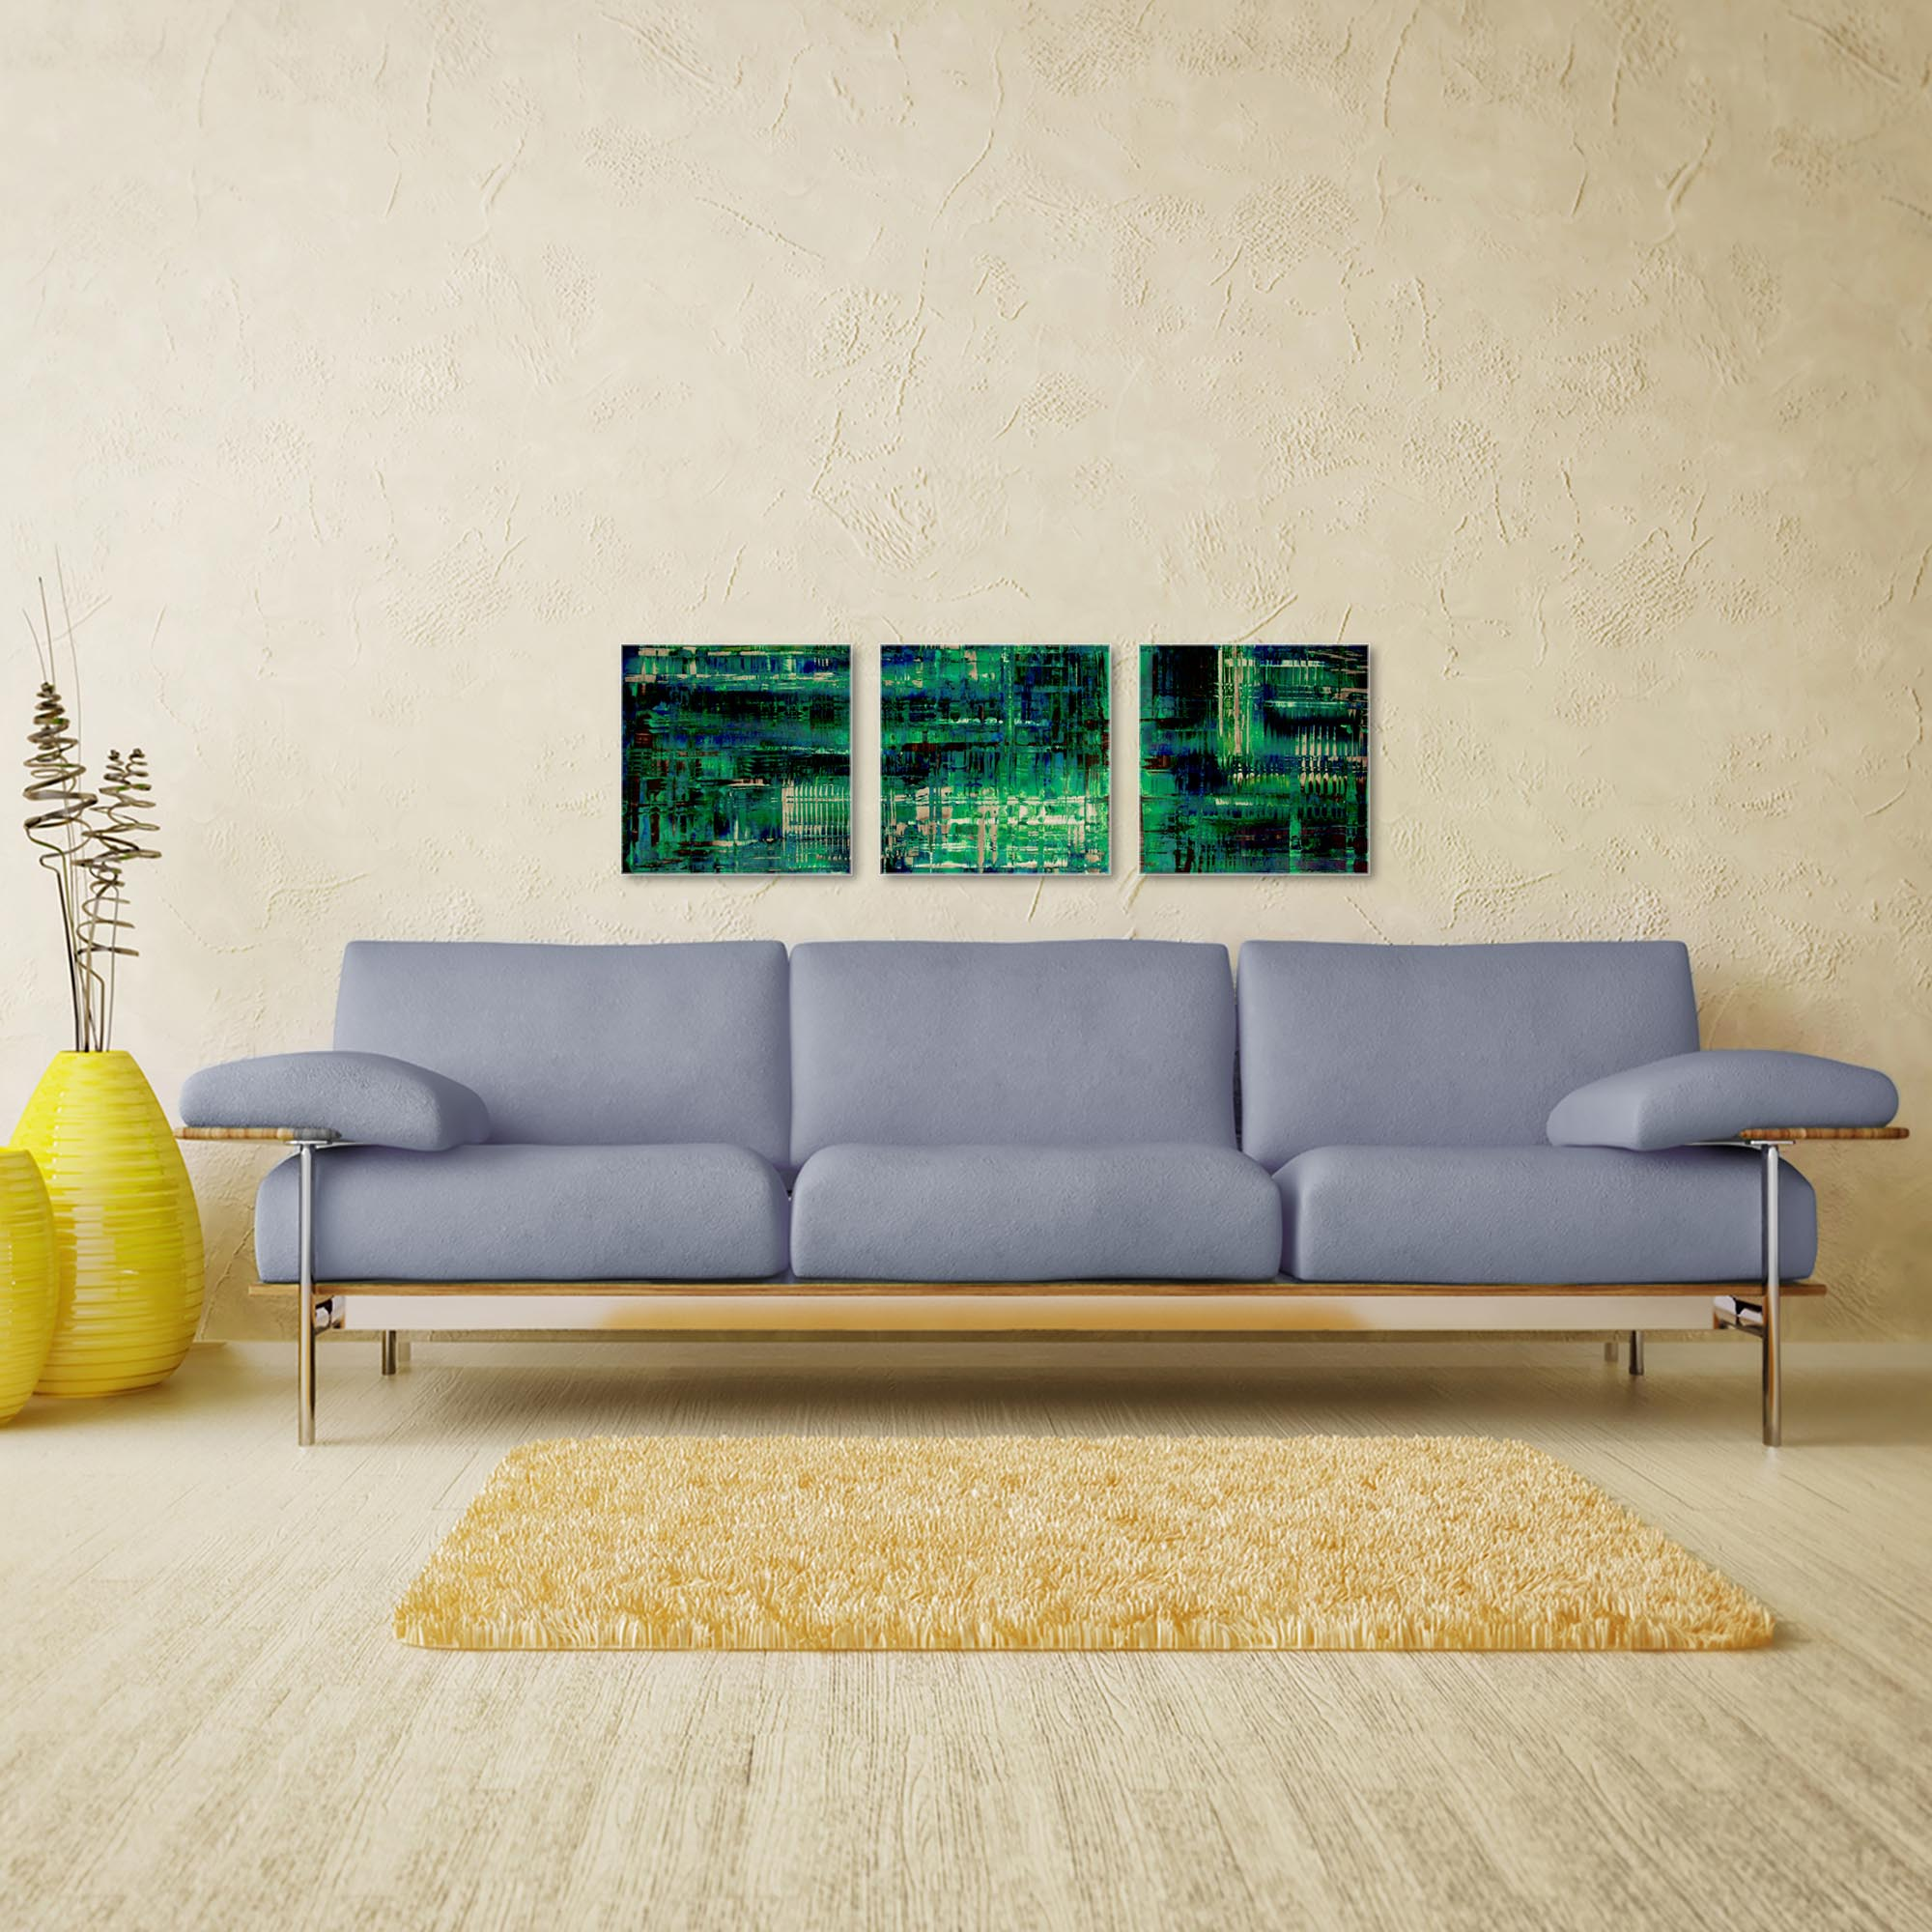 Aporia Blue Triptych 38x12in. Metal or Acrylic Contemporary Decor - Image 3